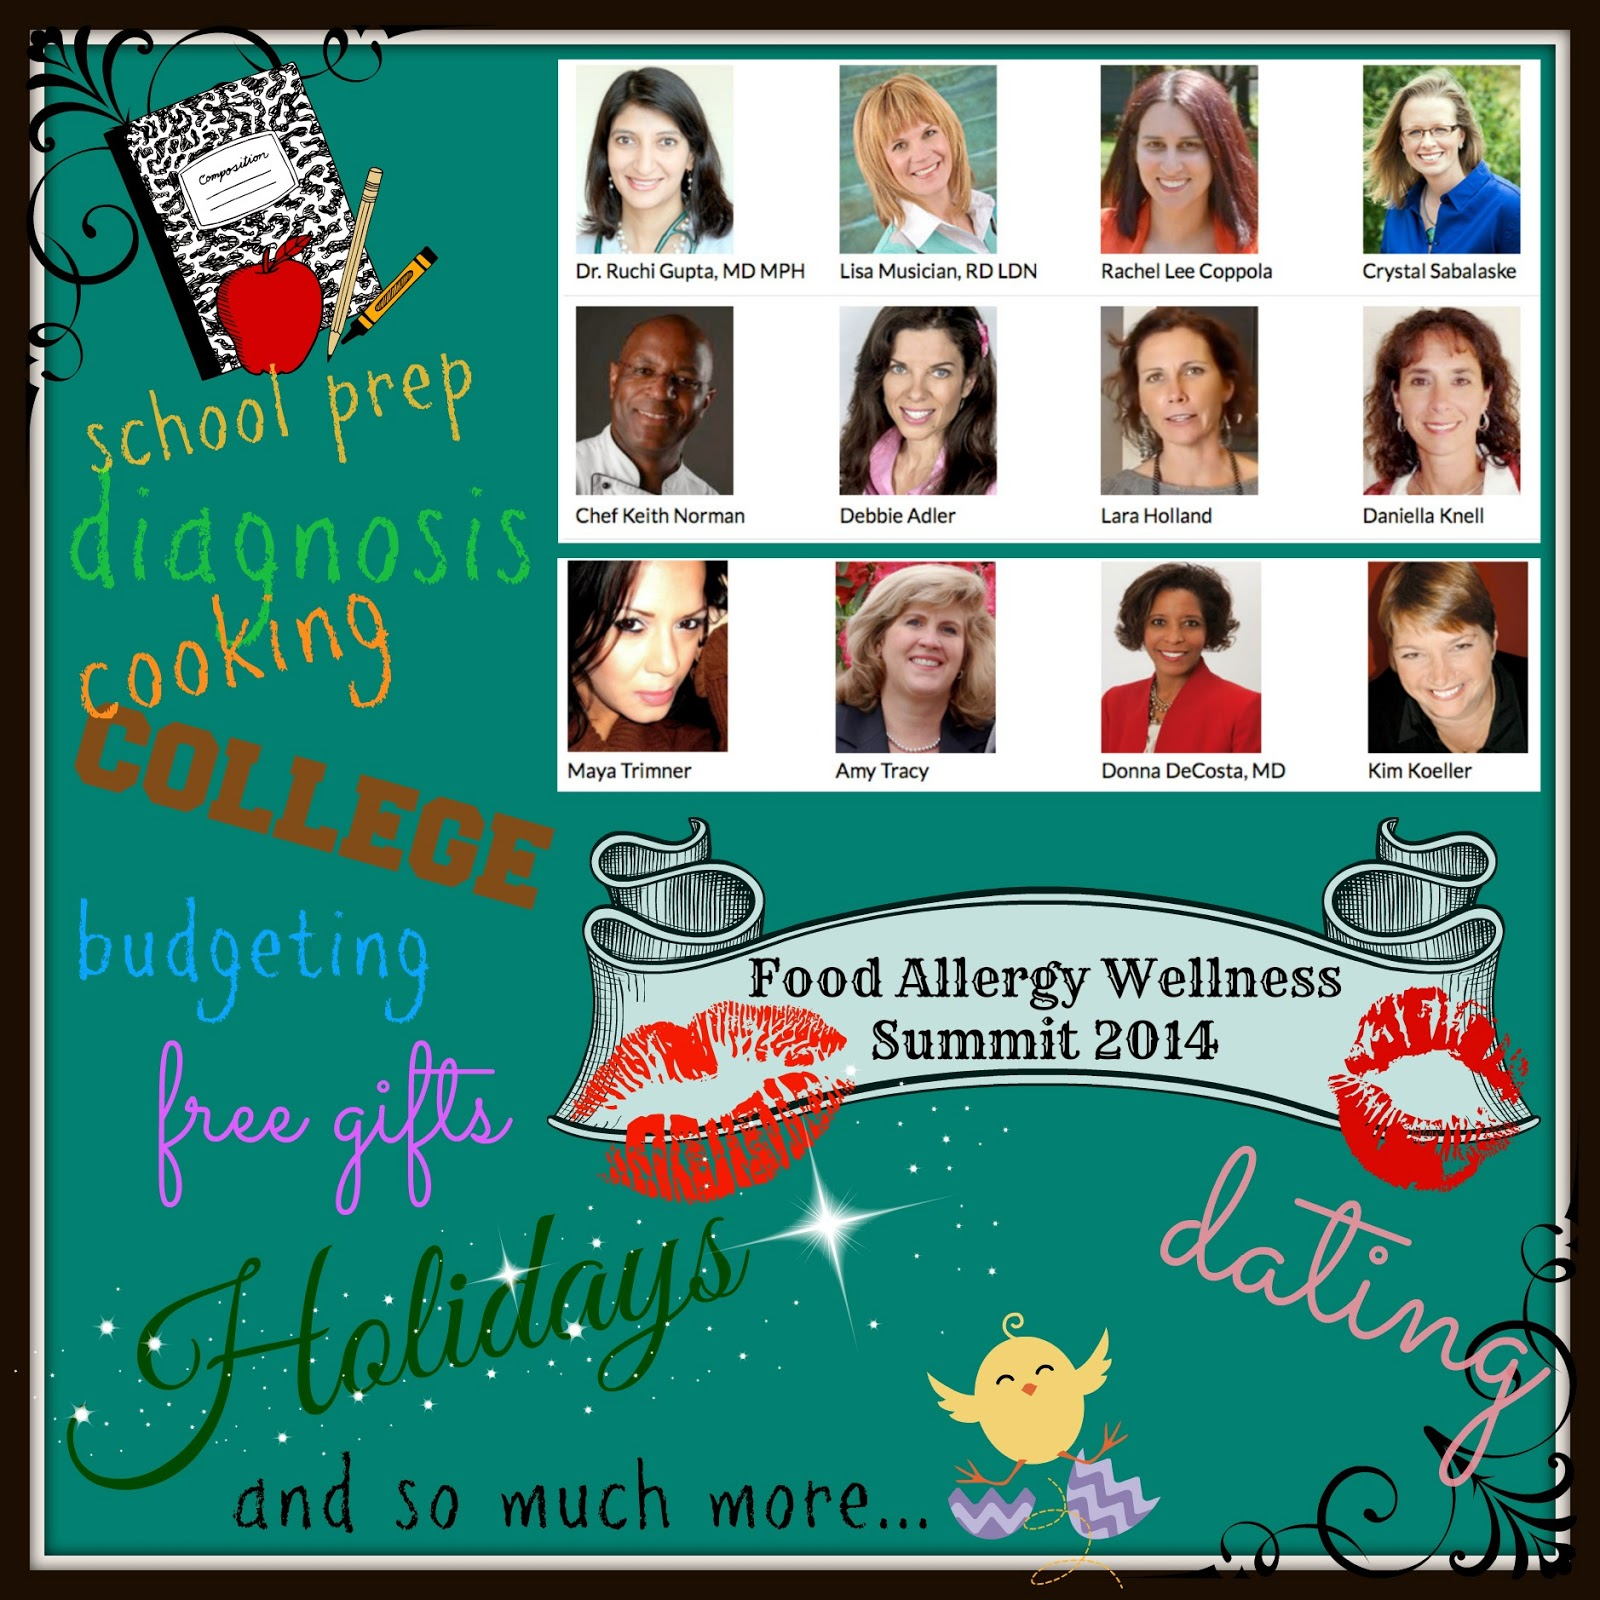 http://mayashappyplace.hubpages.com/hub/Food-Allergy-Wellness-Summit-2014